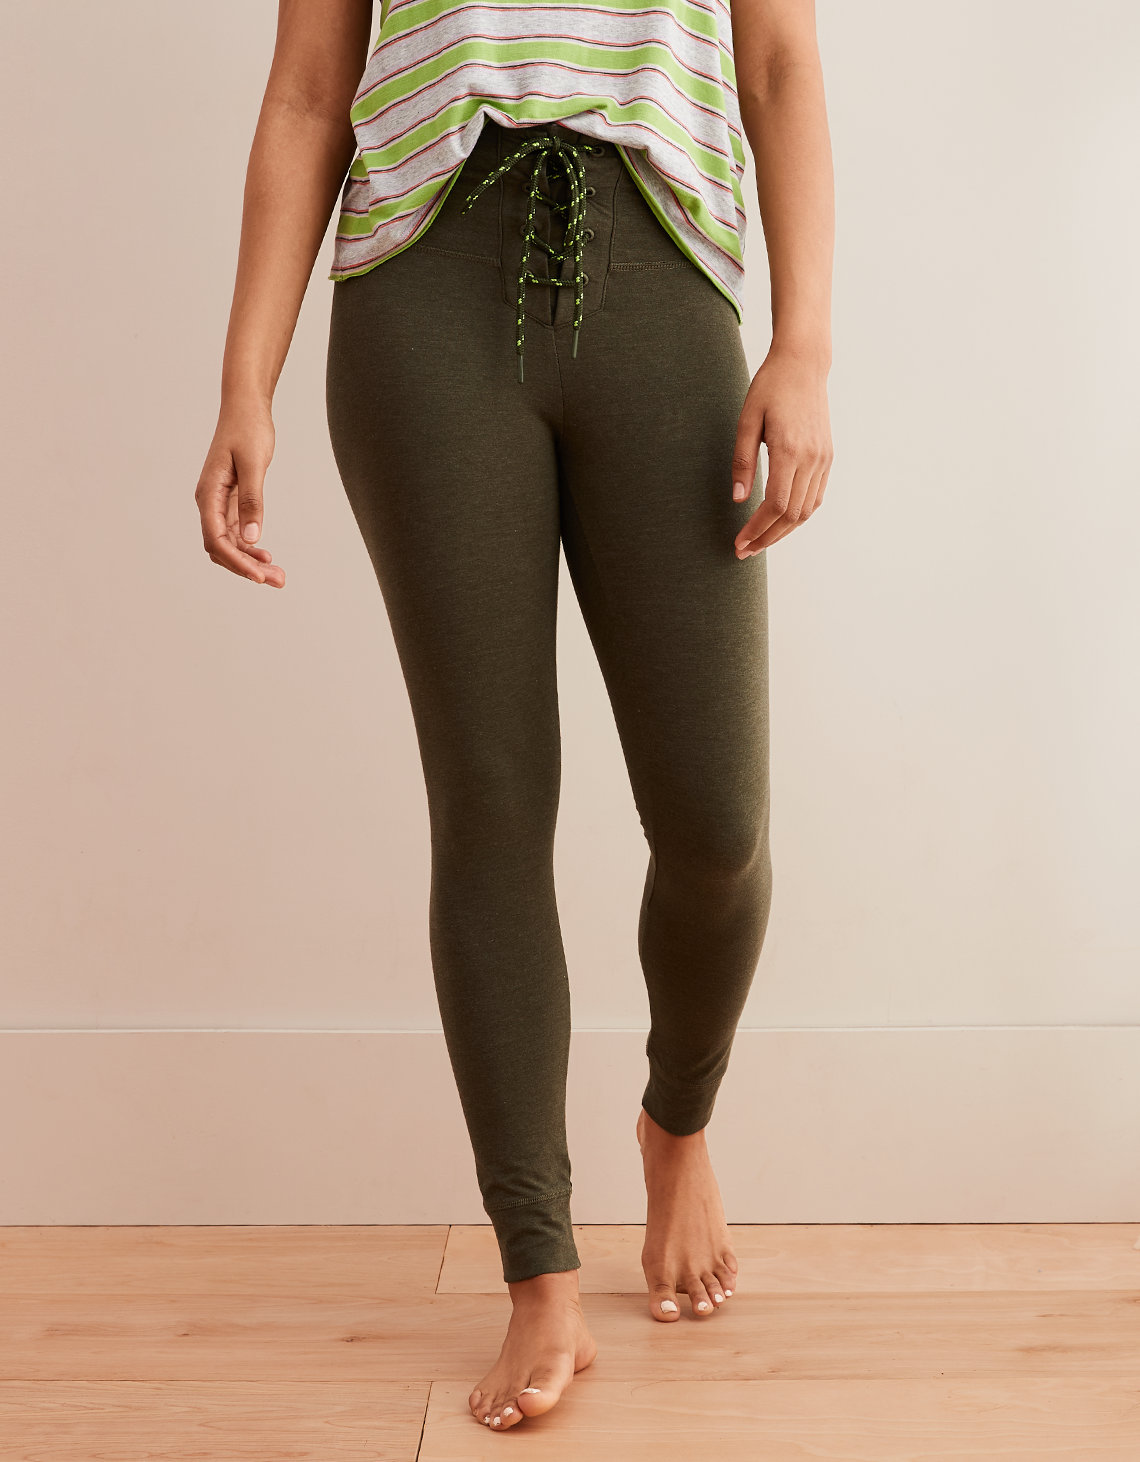 af3ad8ba53ef0 Aerie Chill High Waisted Drawcord Legging. Placeholder image. Product Image